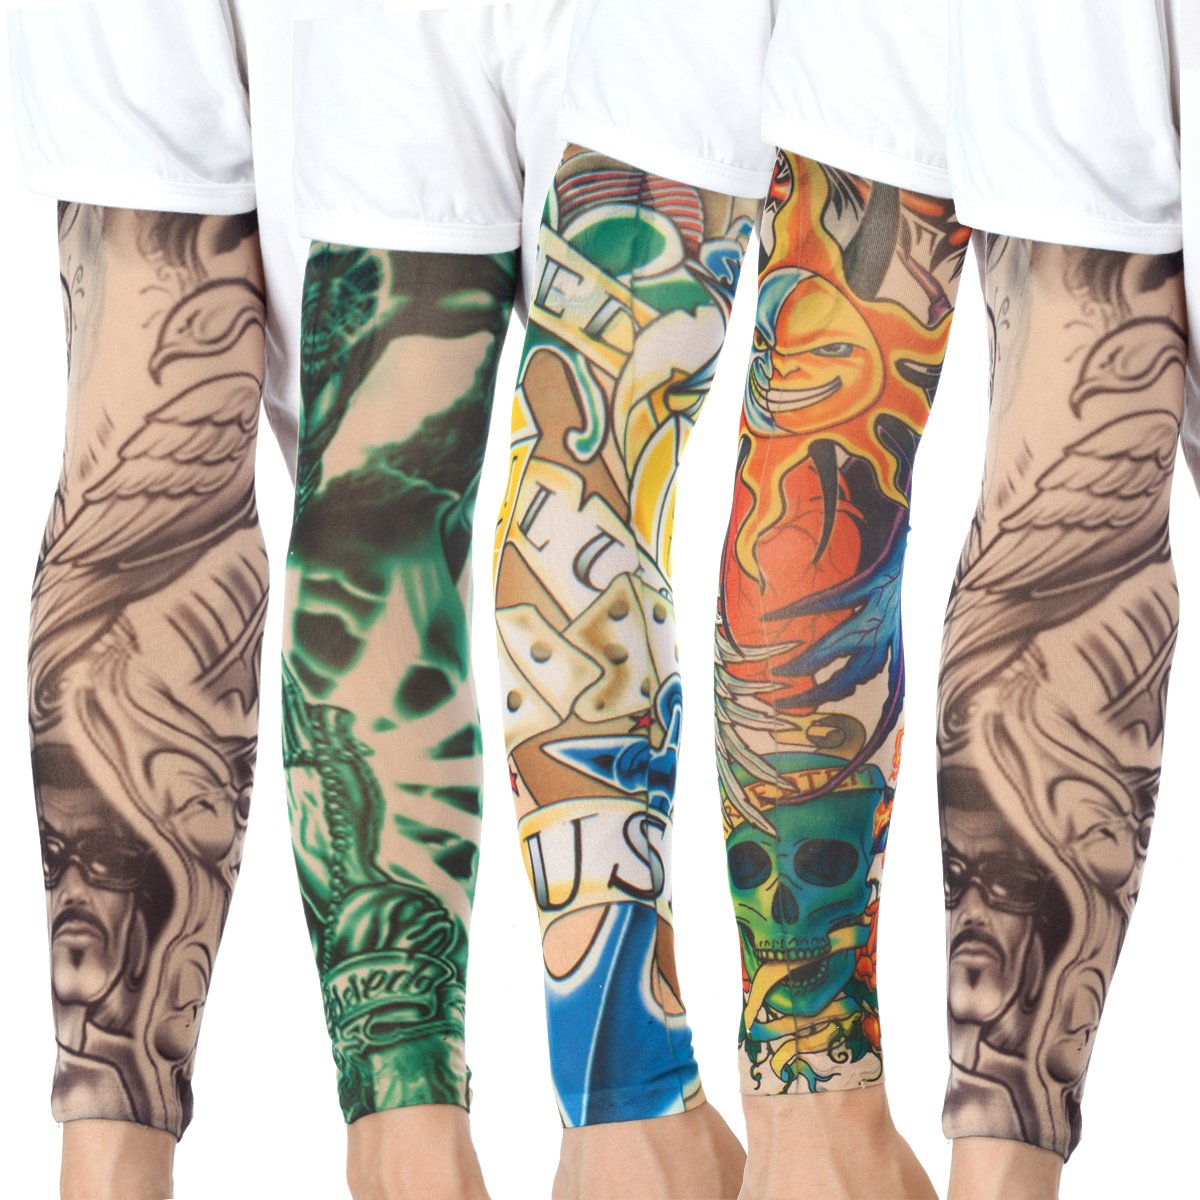 20PCS Set Arts Fake Temporary Tattoo Arm Sunscreen Sleeves - AKStore - Designs Tiger, Crown Heart, Skull, Tribal and Etc by Akstore (Image #4)